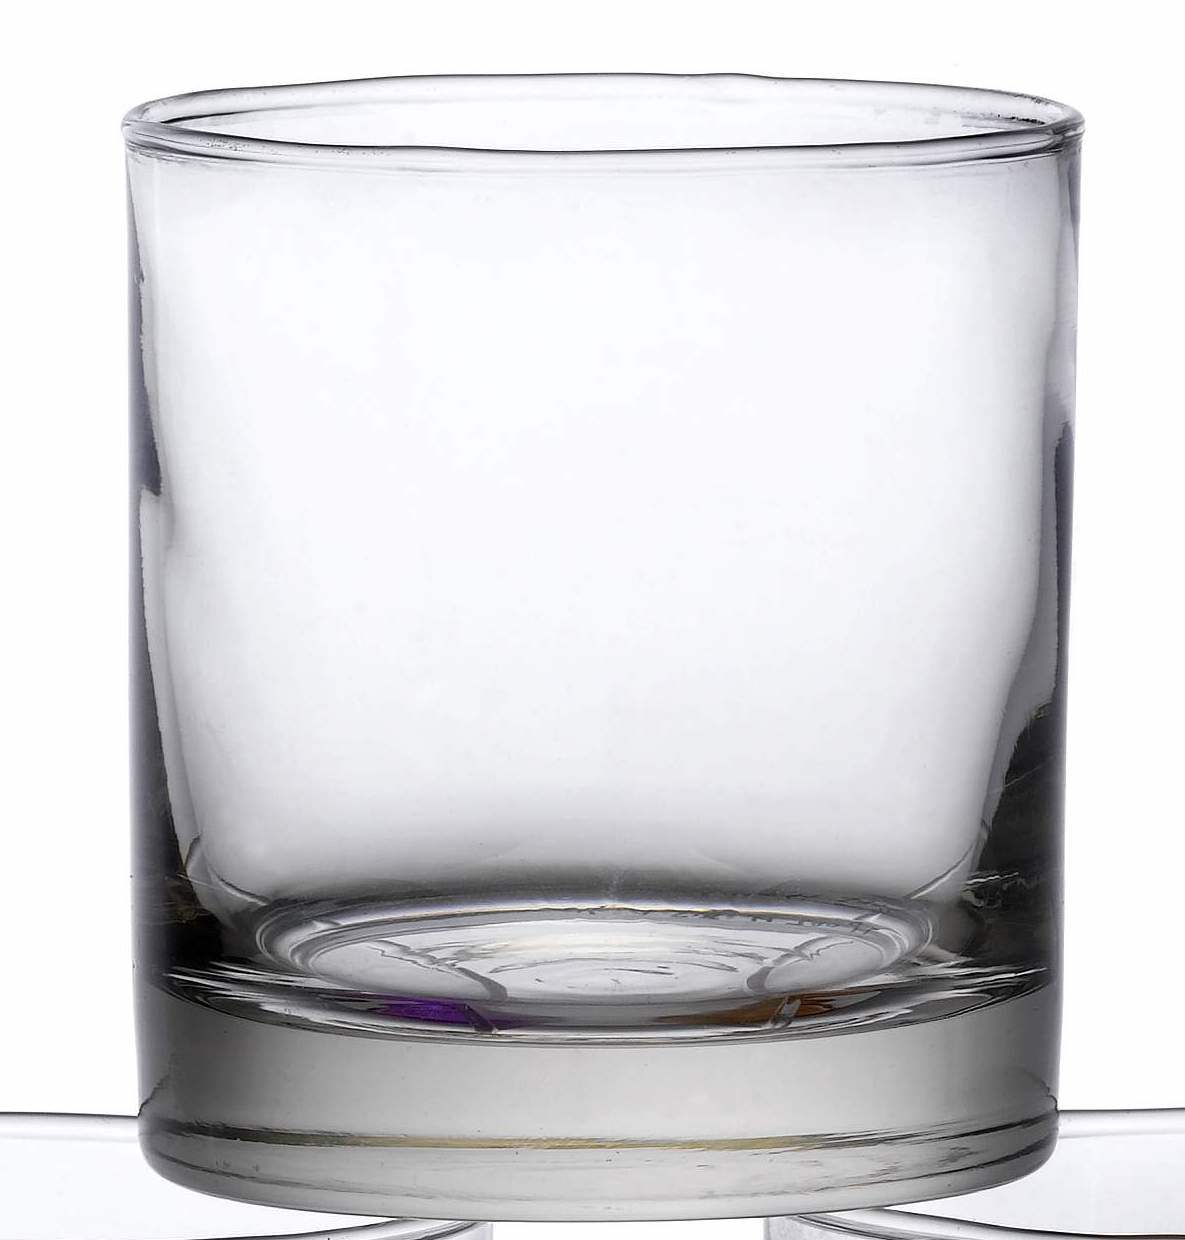 Http Rsglass En Made In China Com Product Iqxxlgbkxmhb China Glass Tumbler Tp002 Html